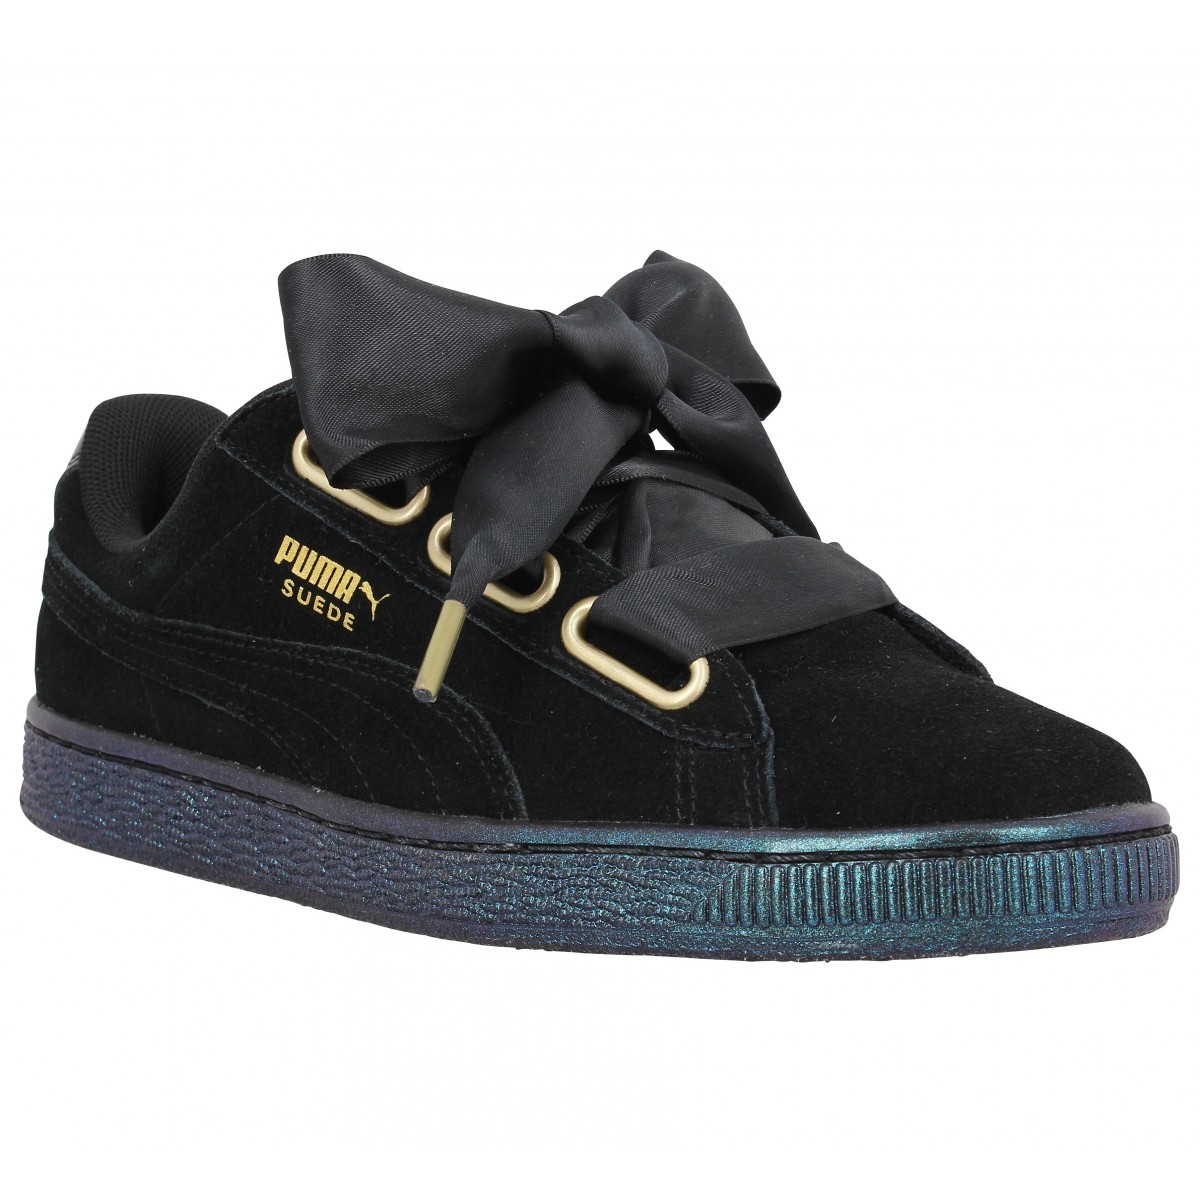 b2aa87b6400 Satin Des Femmes Heart Chaussures Puma Suede puma Abordable Tvqwp4Ax.  Comparer Plateforme ...